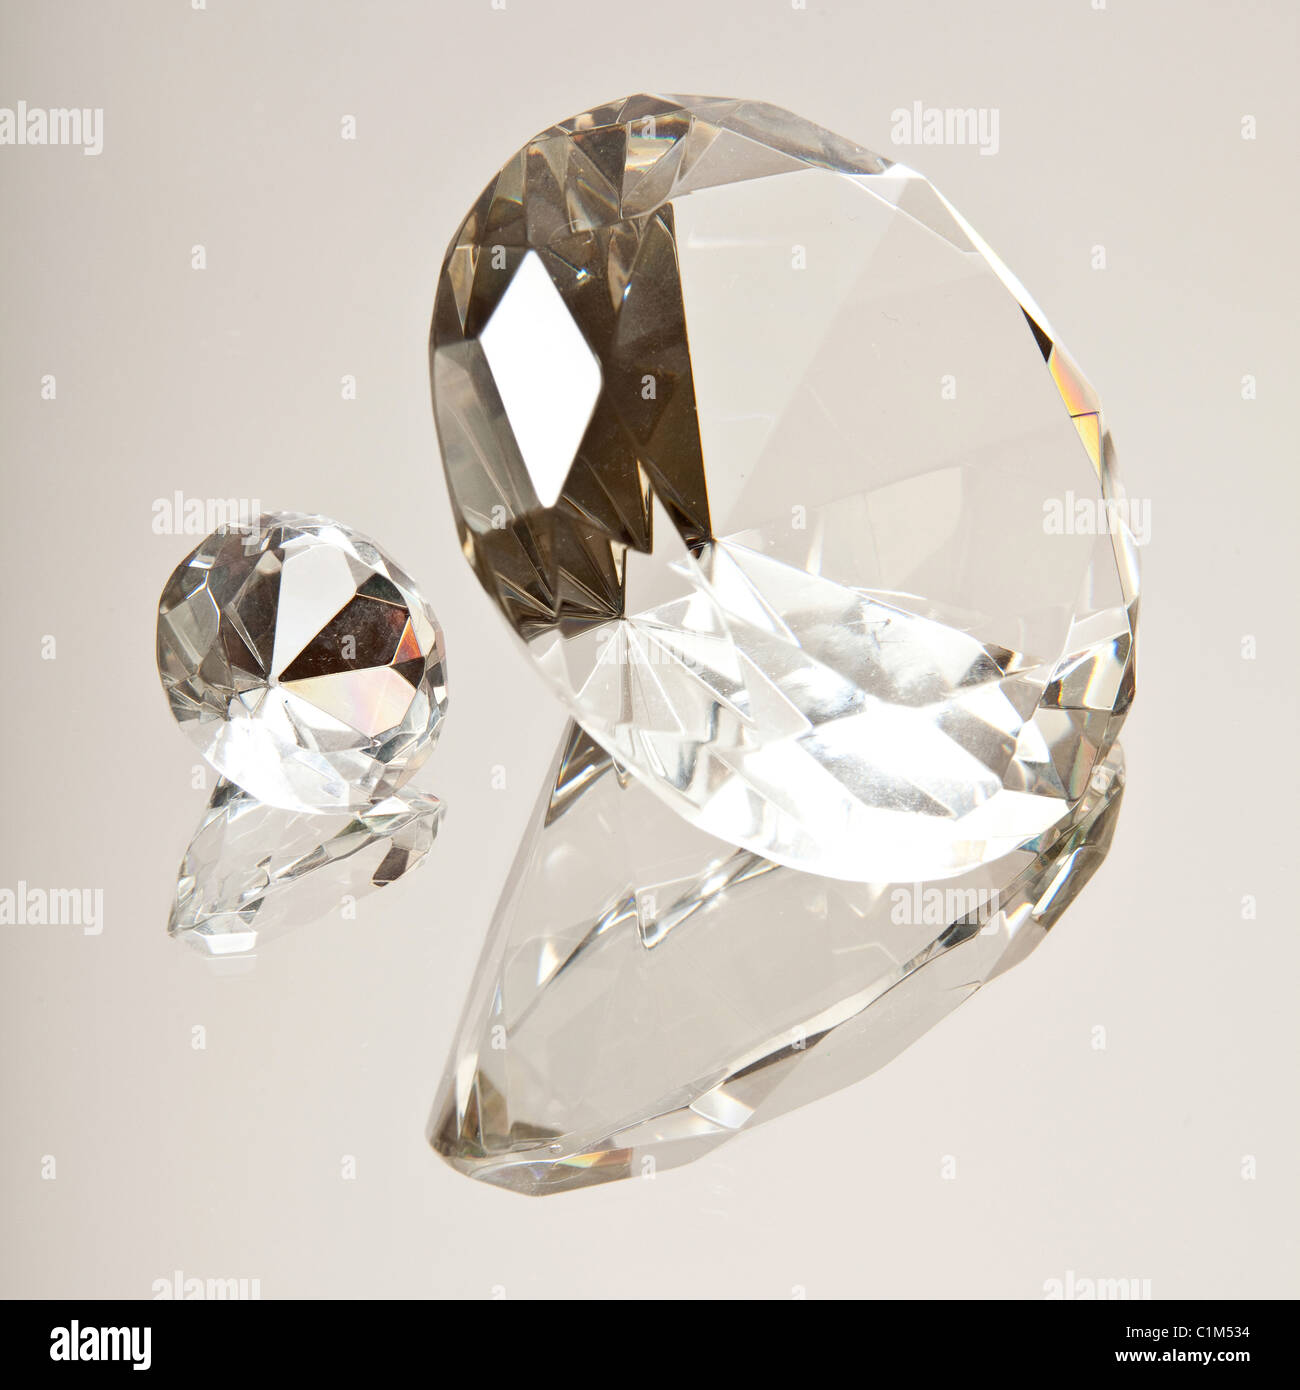 Diamonds on a mirrored surface - Stock Image